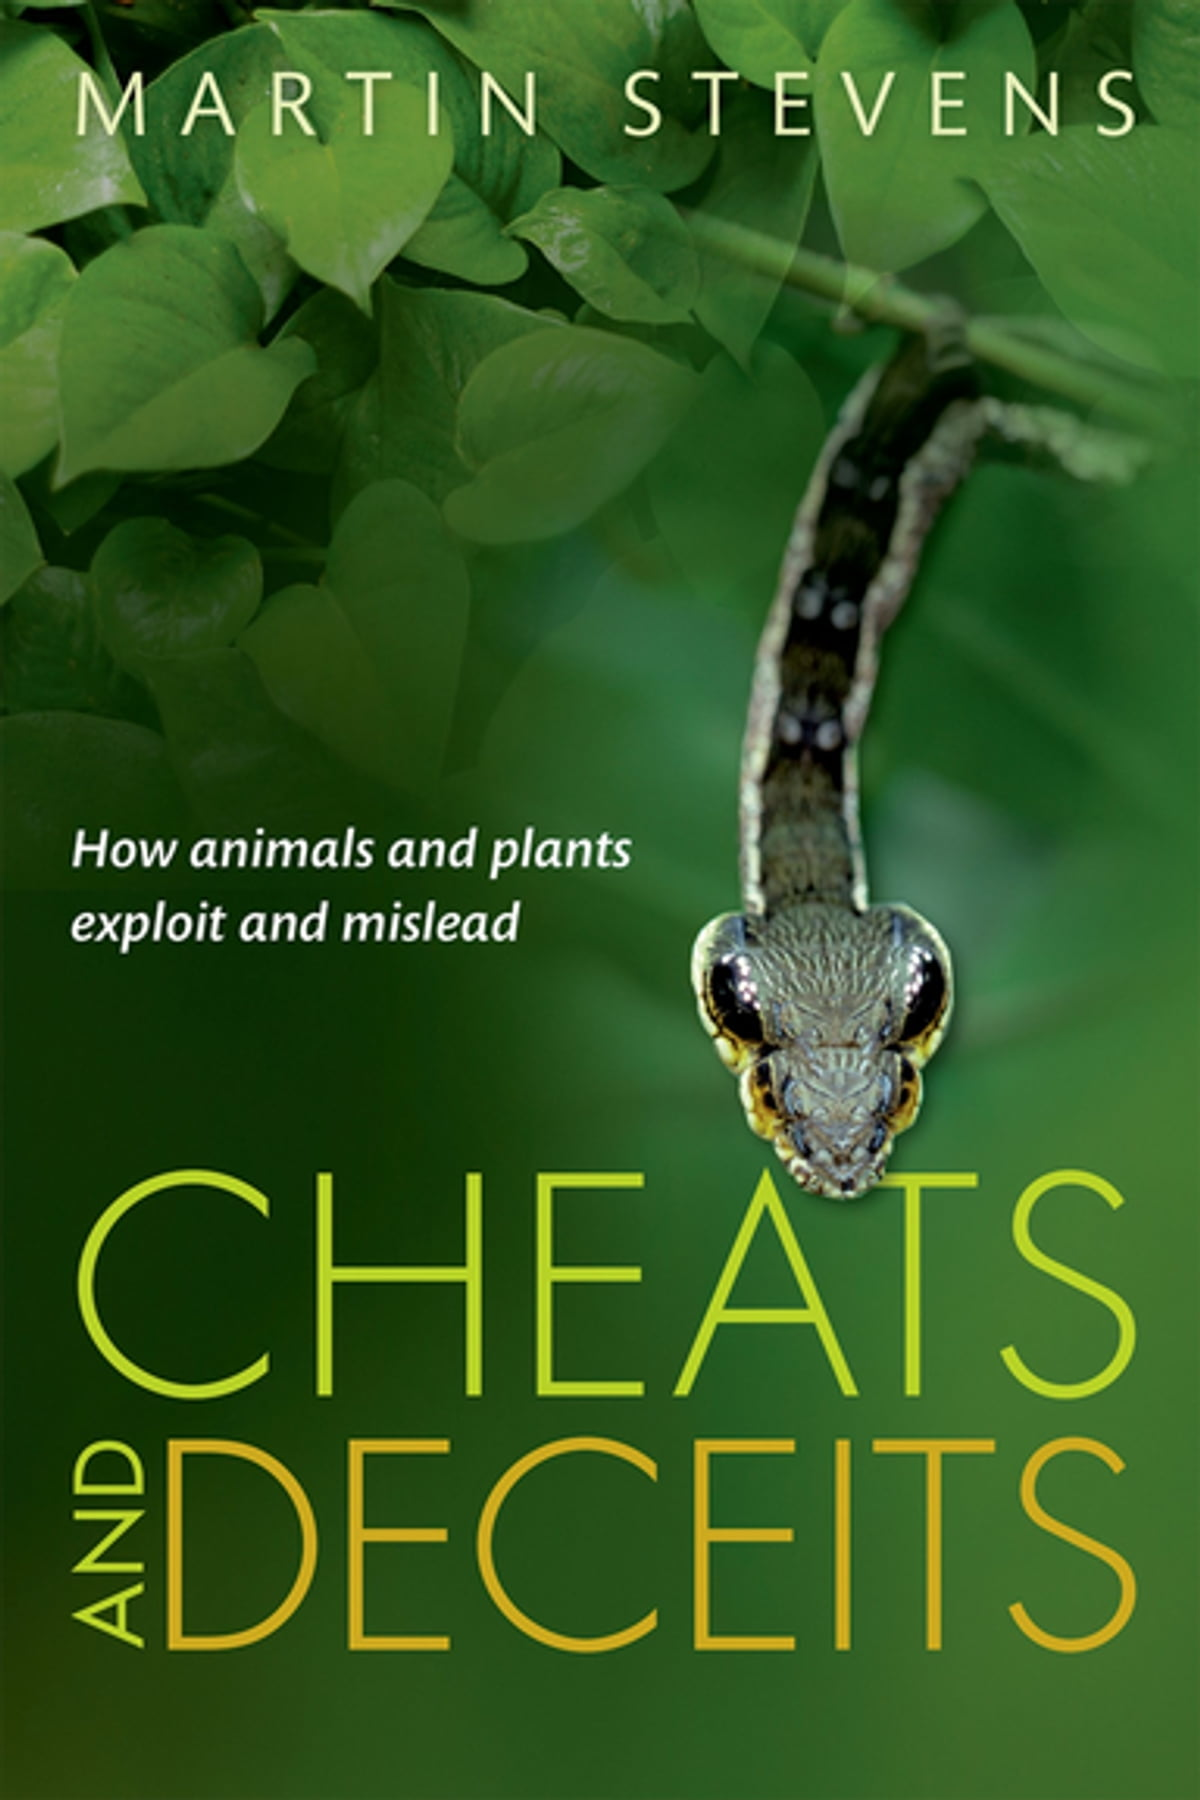 Cheats and deceits ebook by martin stevens 9780191017612 cheats and deceits ebook by martin stevens 9780191017612 rakuten kobo fandeluxe Ebook collections